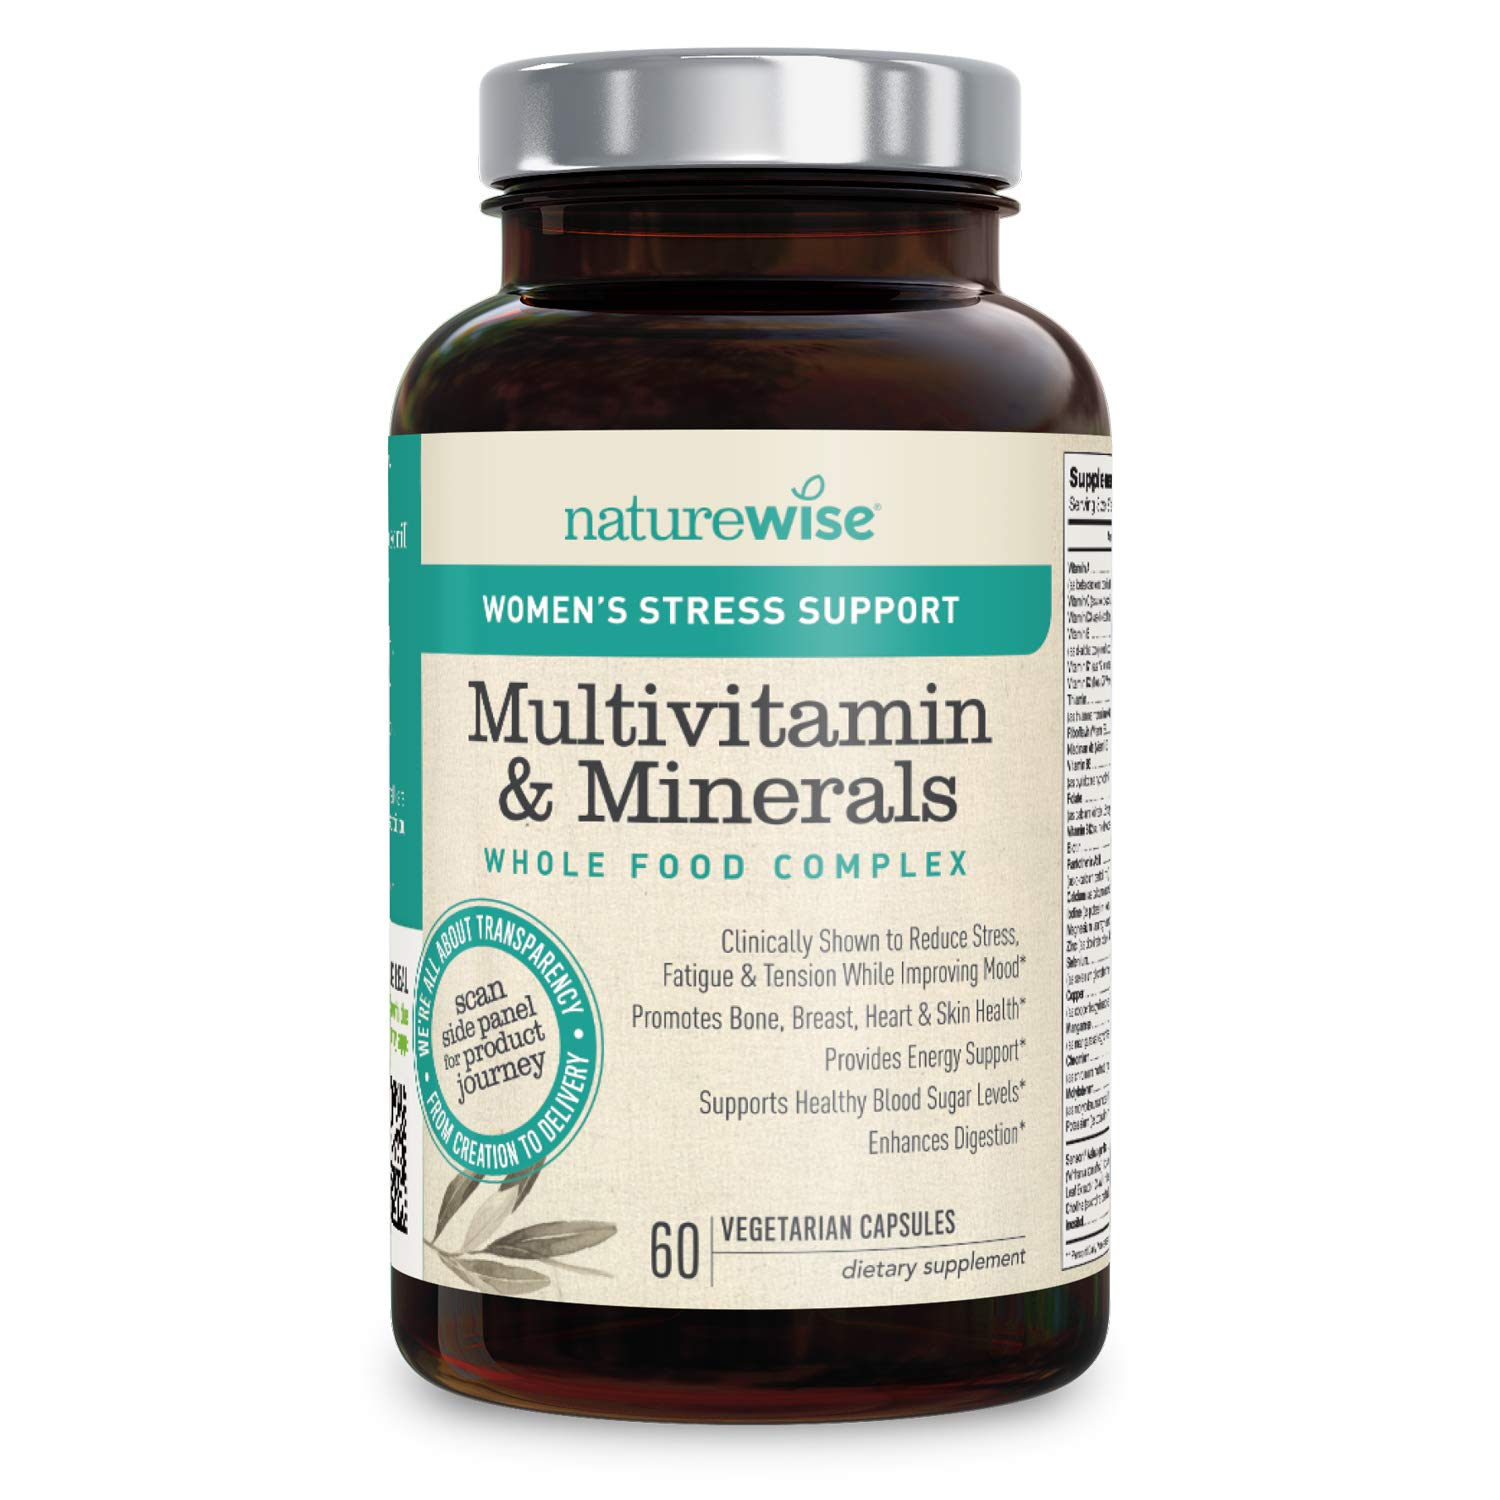 NatureWise Women's Stress Support Multivitamin and Minerals Whole Food Complex